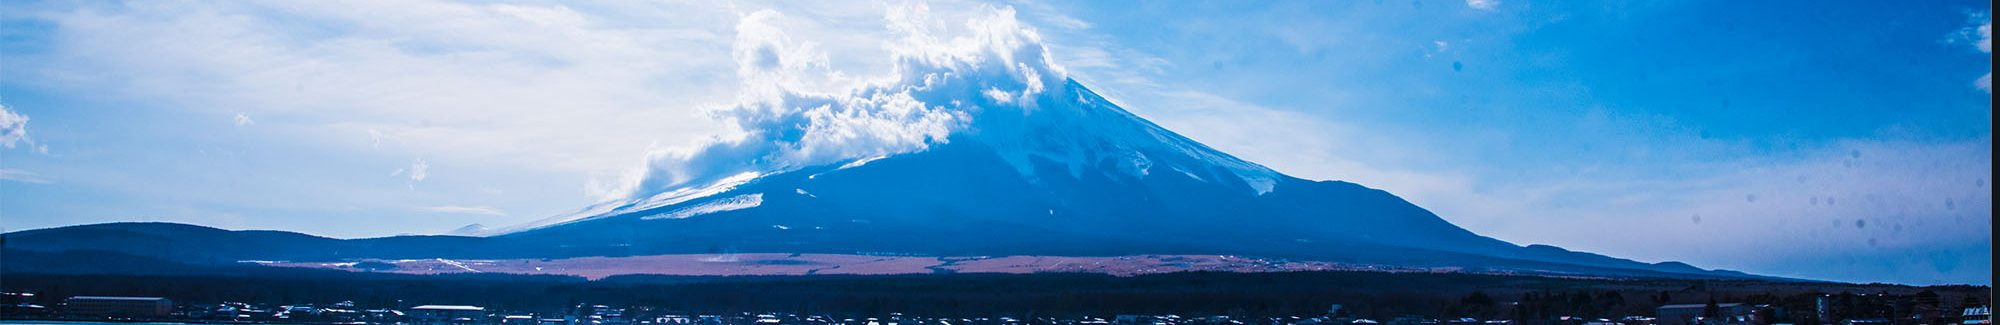 富士山絶景 Mt. Fuji, Amazing Views